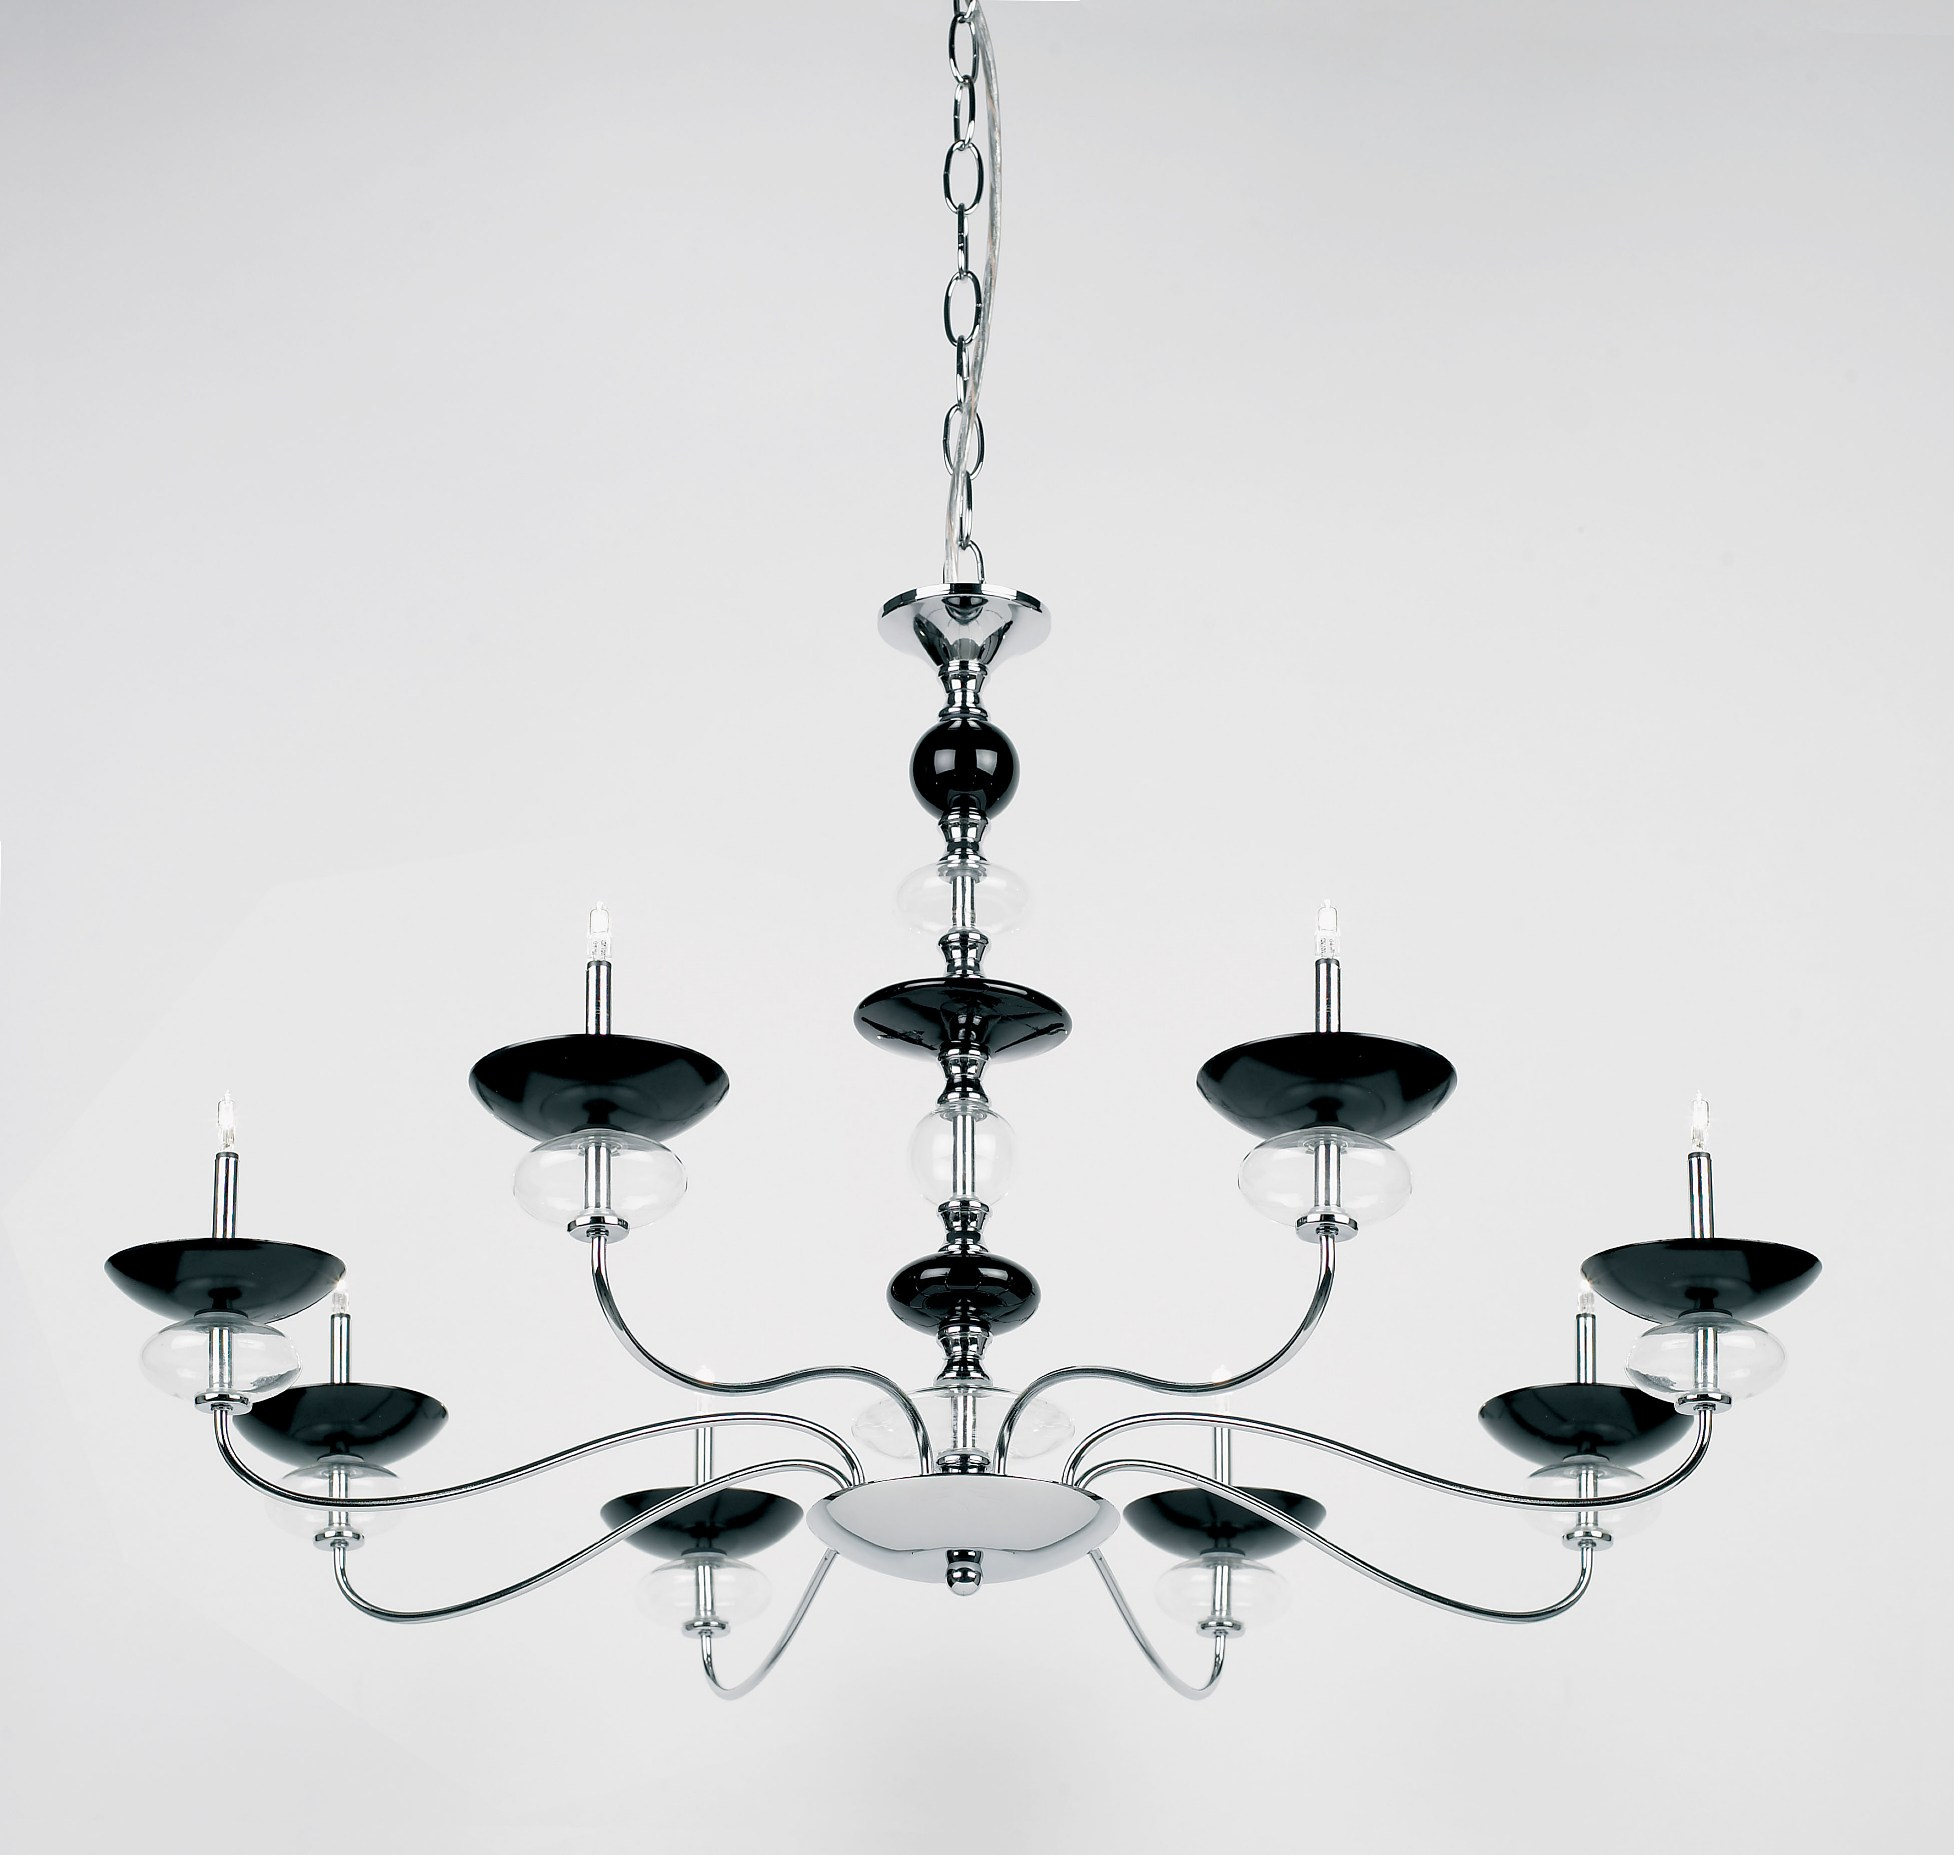 Modern Arm Chandelier: Contemporary Five Arm Chandelier